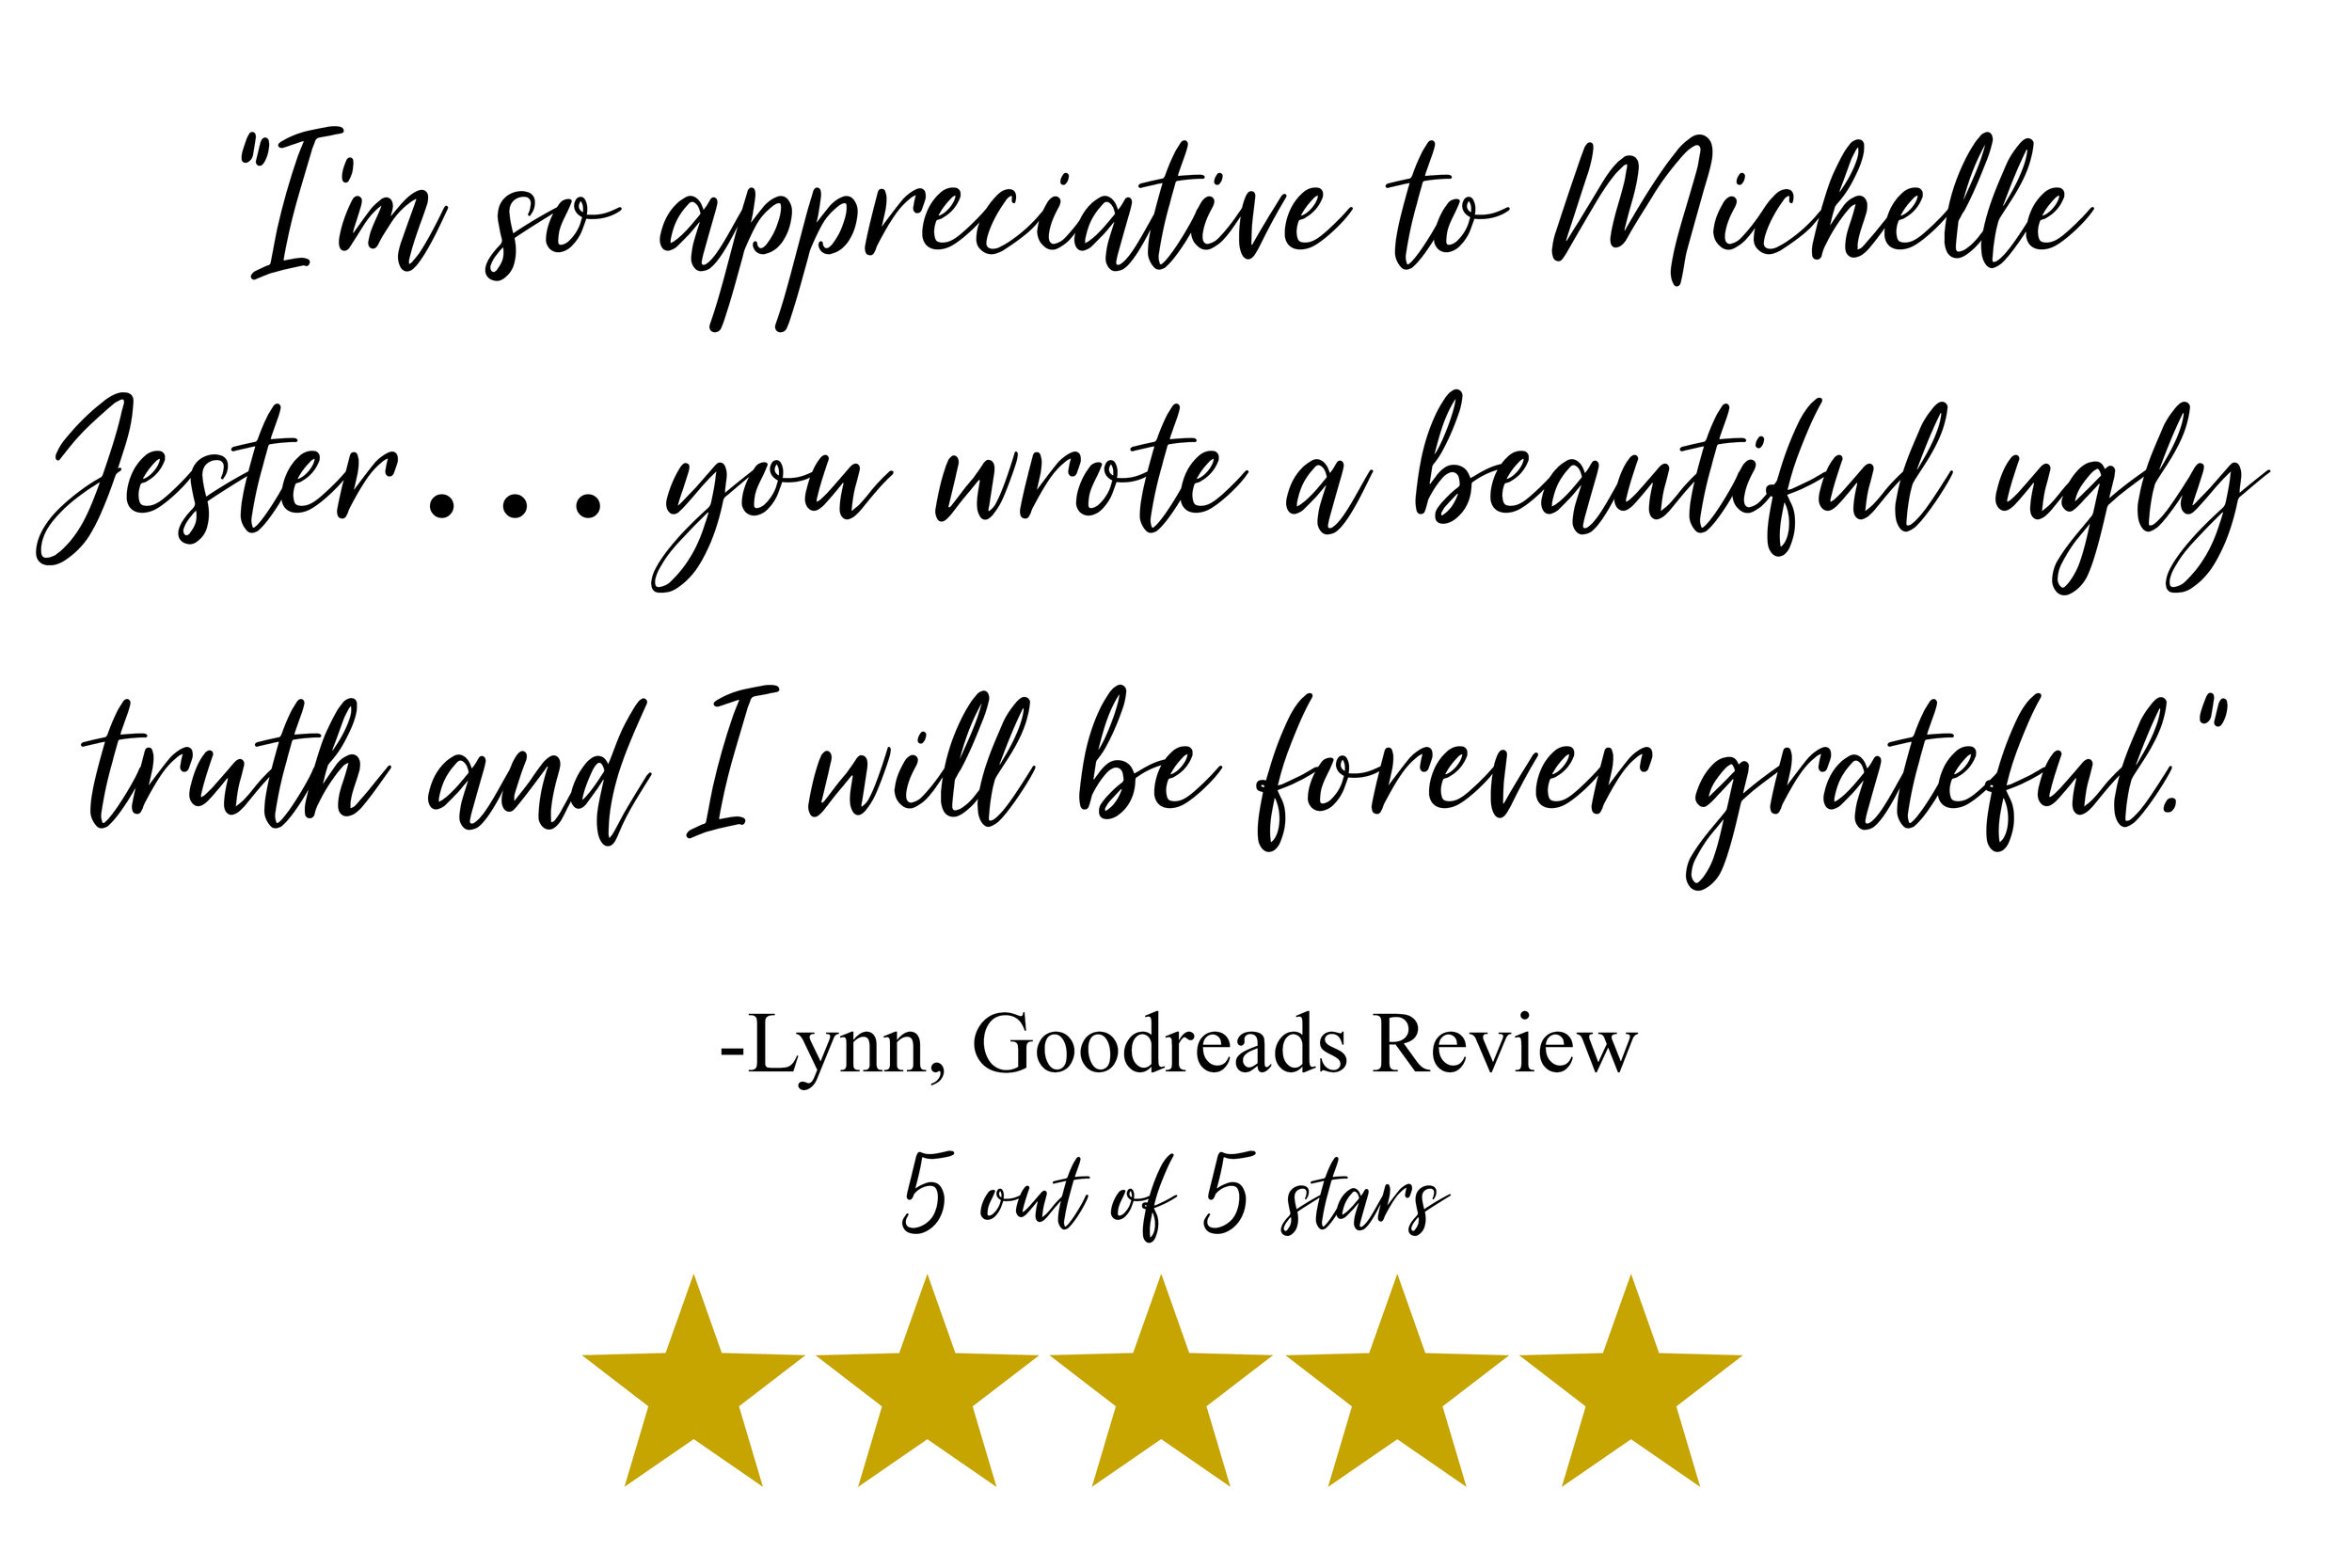 """I'm so appreciative to Michelle Jester… know that you wrote a beautiful ugly truth and I will be forever grateful."" -Lynn, Goodreads"